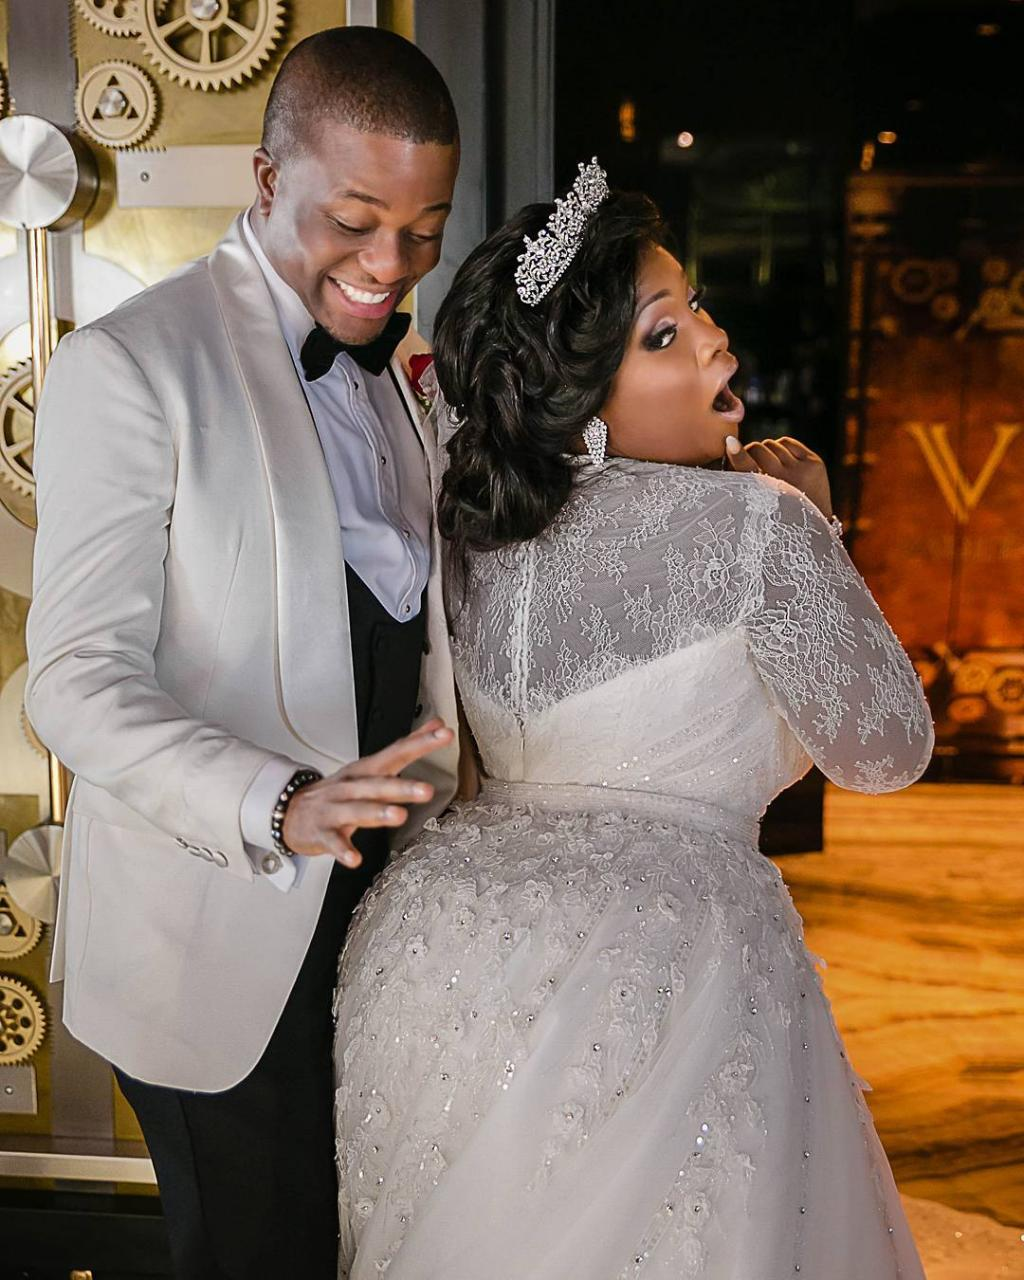 18646563 267645300366526 6665571630284013568 n - OAP Toolz and Hubby, Tunde Demuren Celebrates 1st Wedding Anniversary